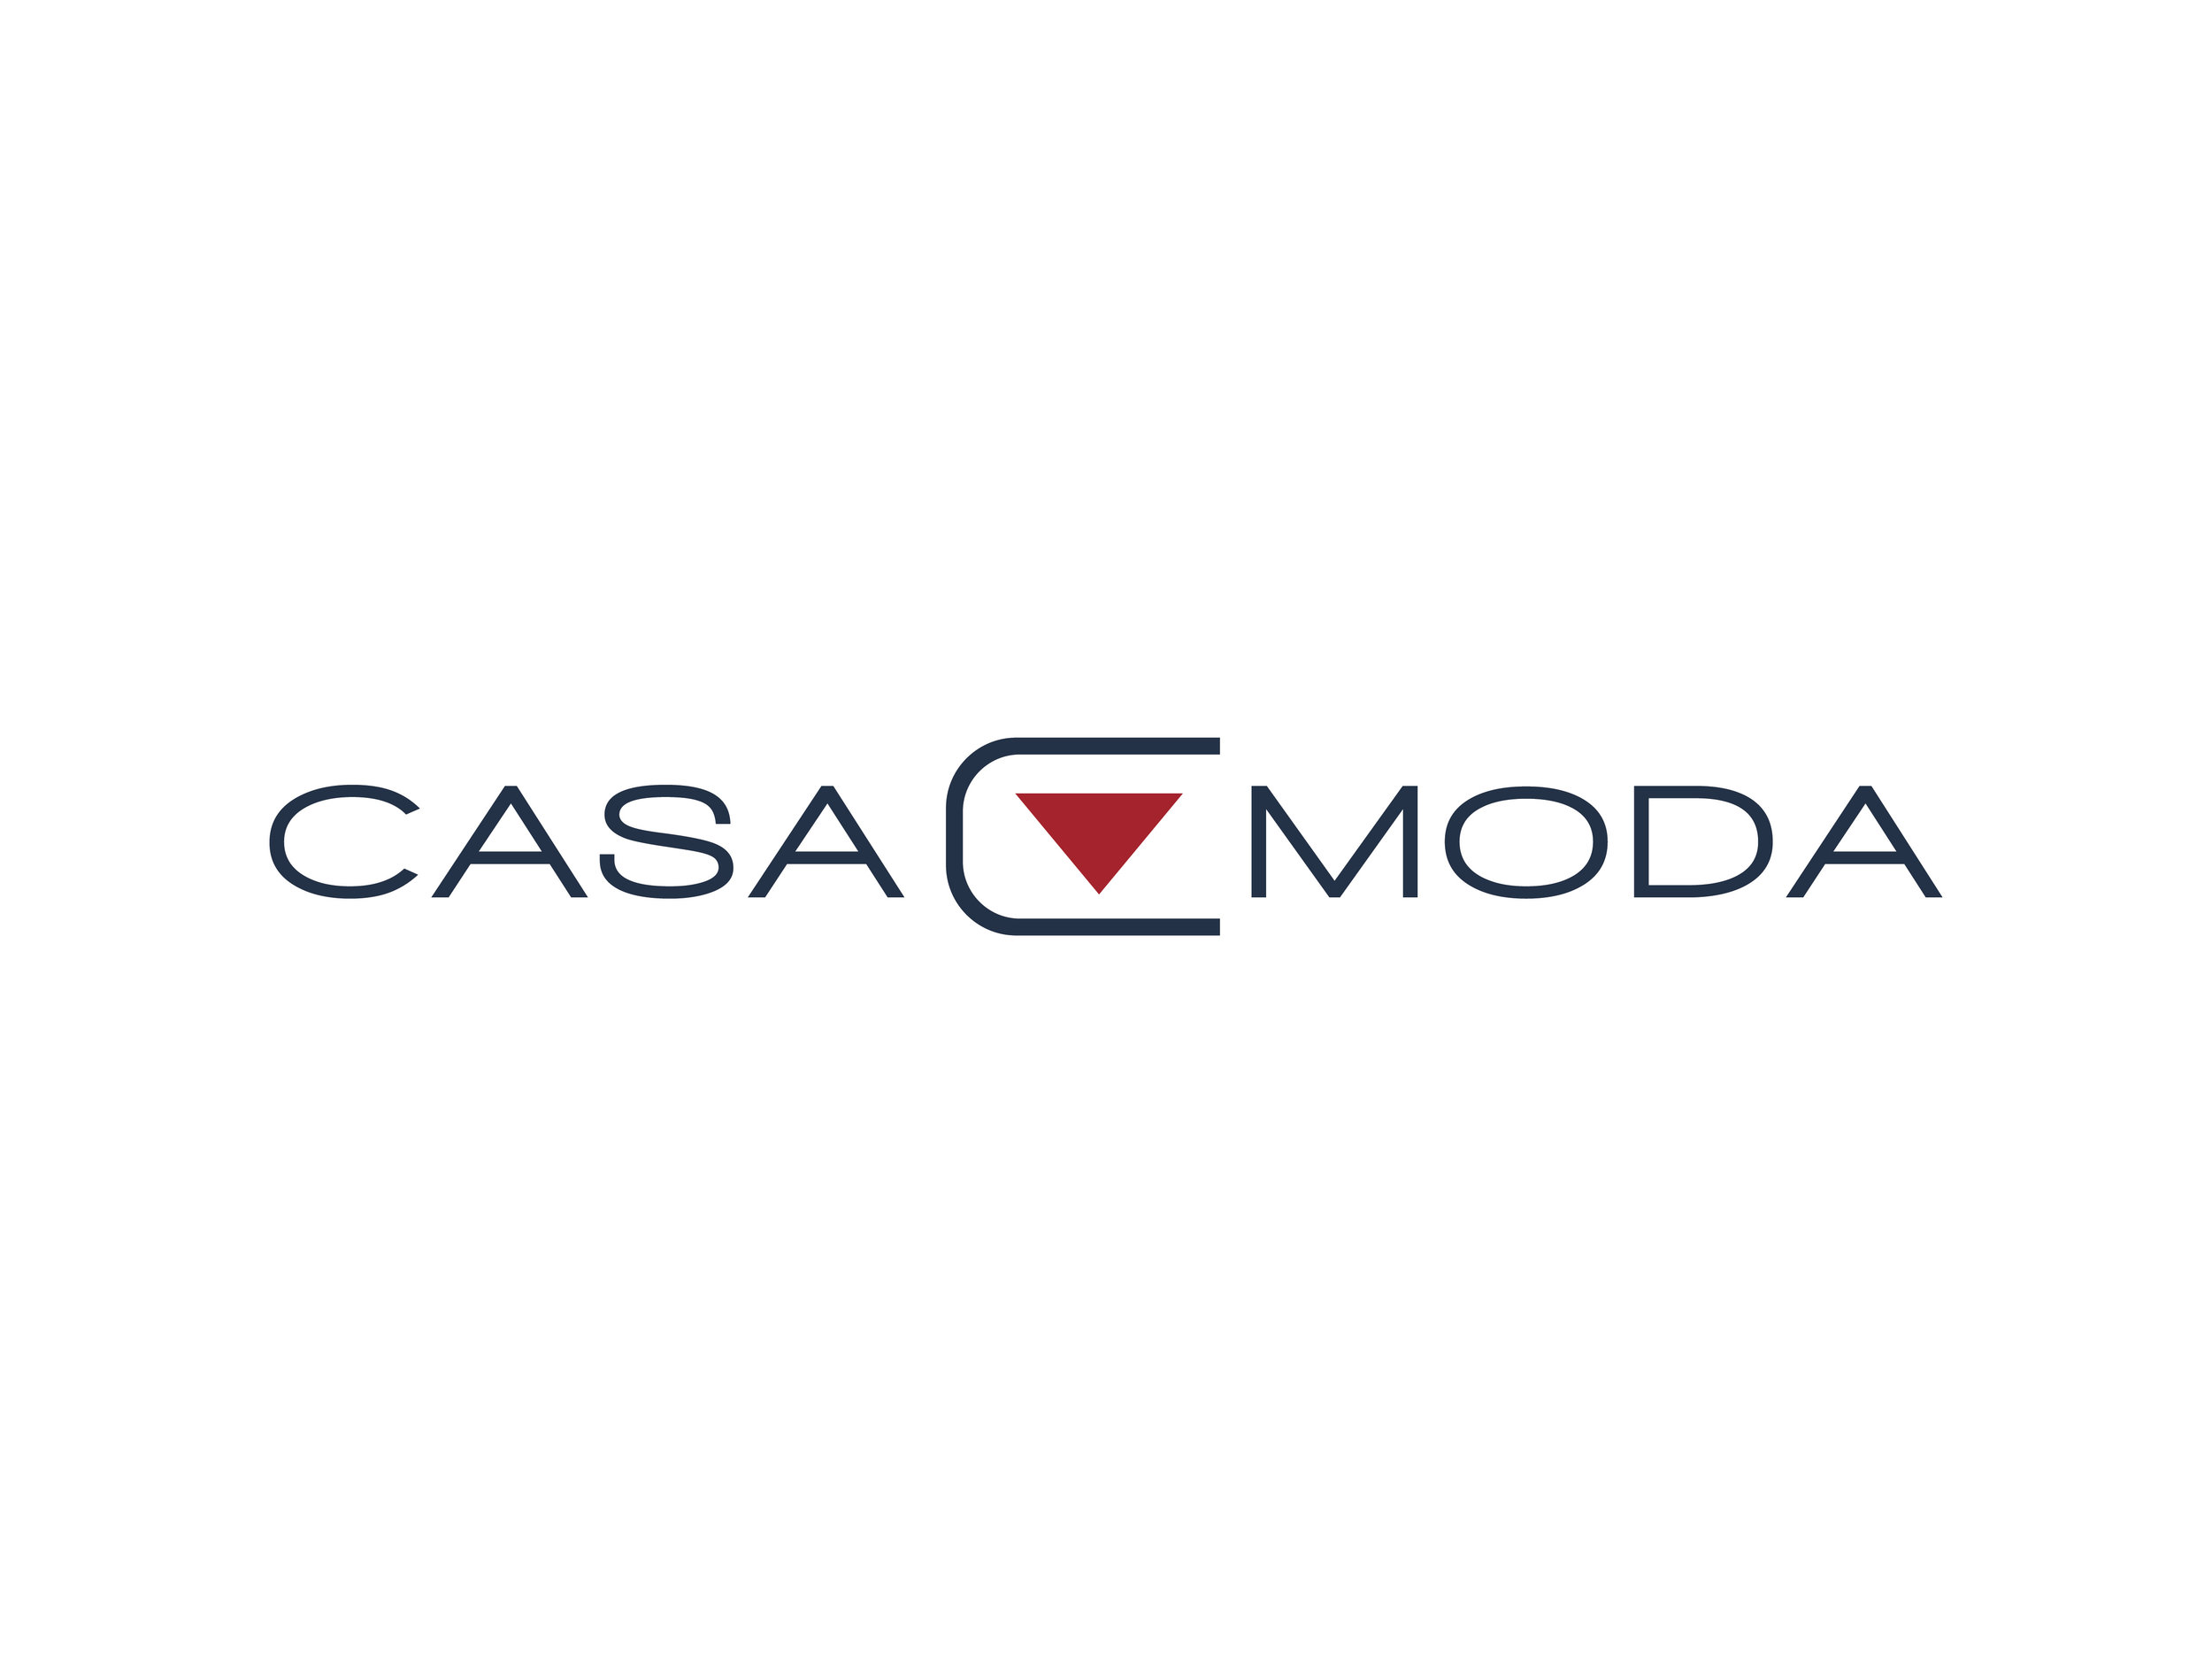 Casa Moda Logo Band Row2 Export.jpg